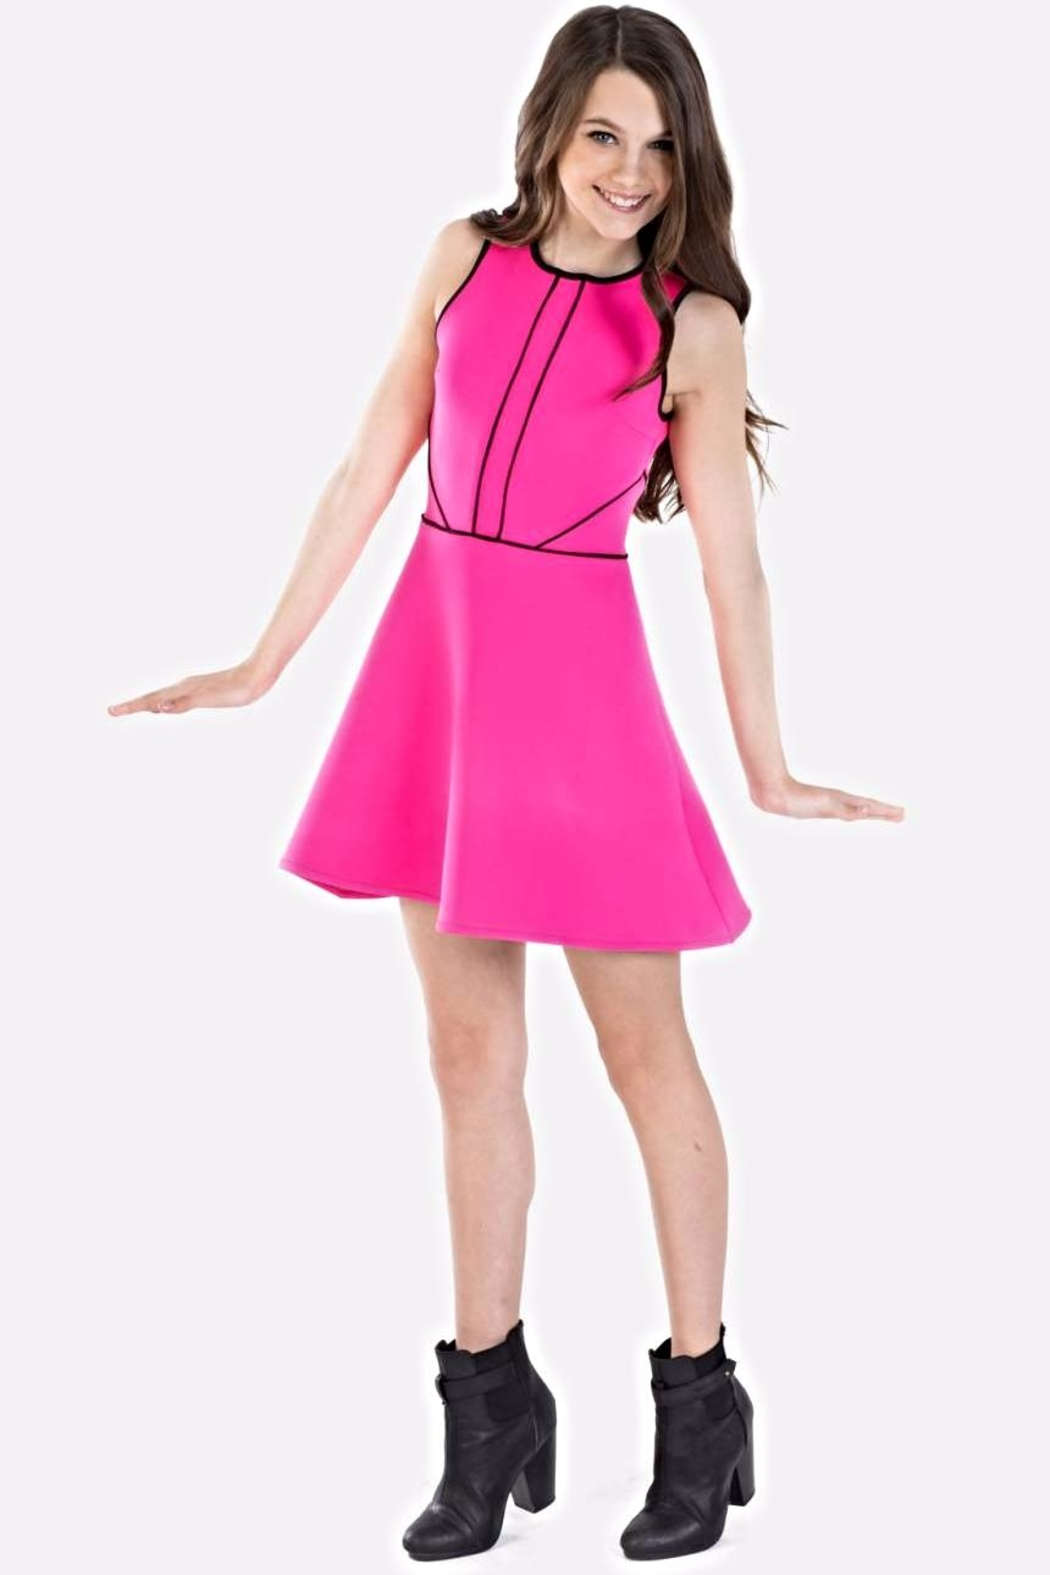 19de39a6fcec Miss Behave girls Kate Hotpink Dress from Texas by Rock2Royal ...